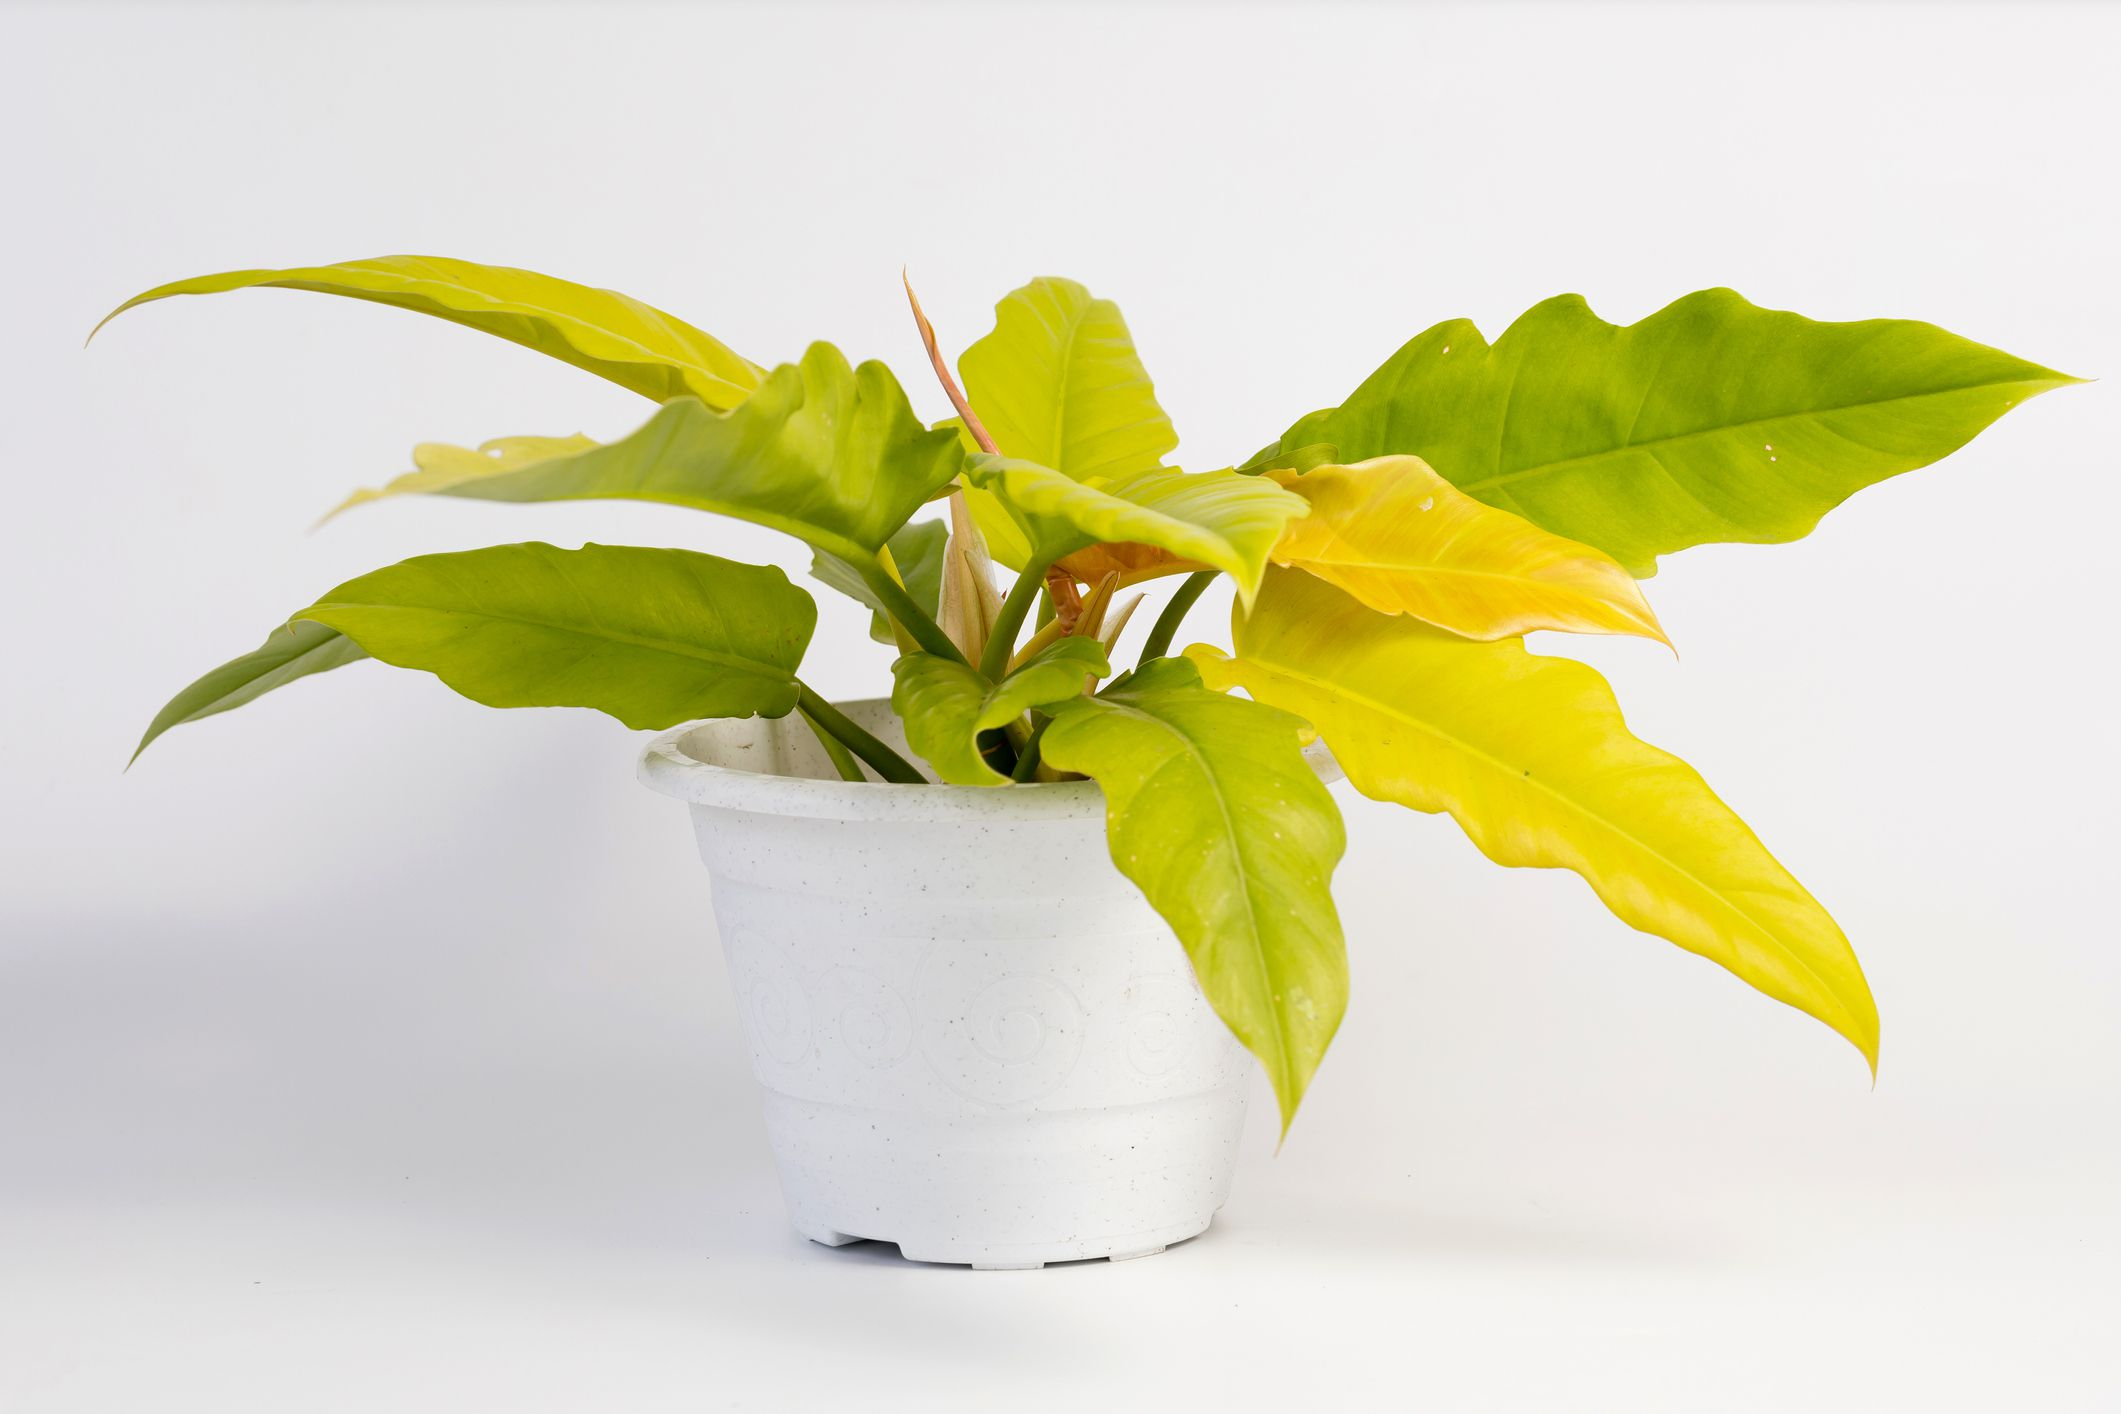 philodendron golden ring of fire in white pot on white background